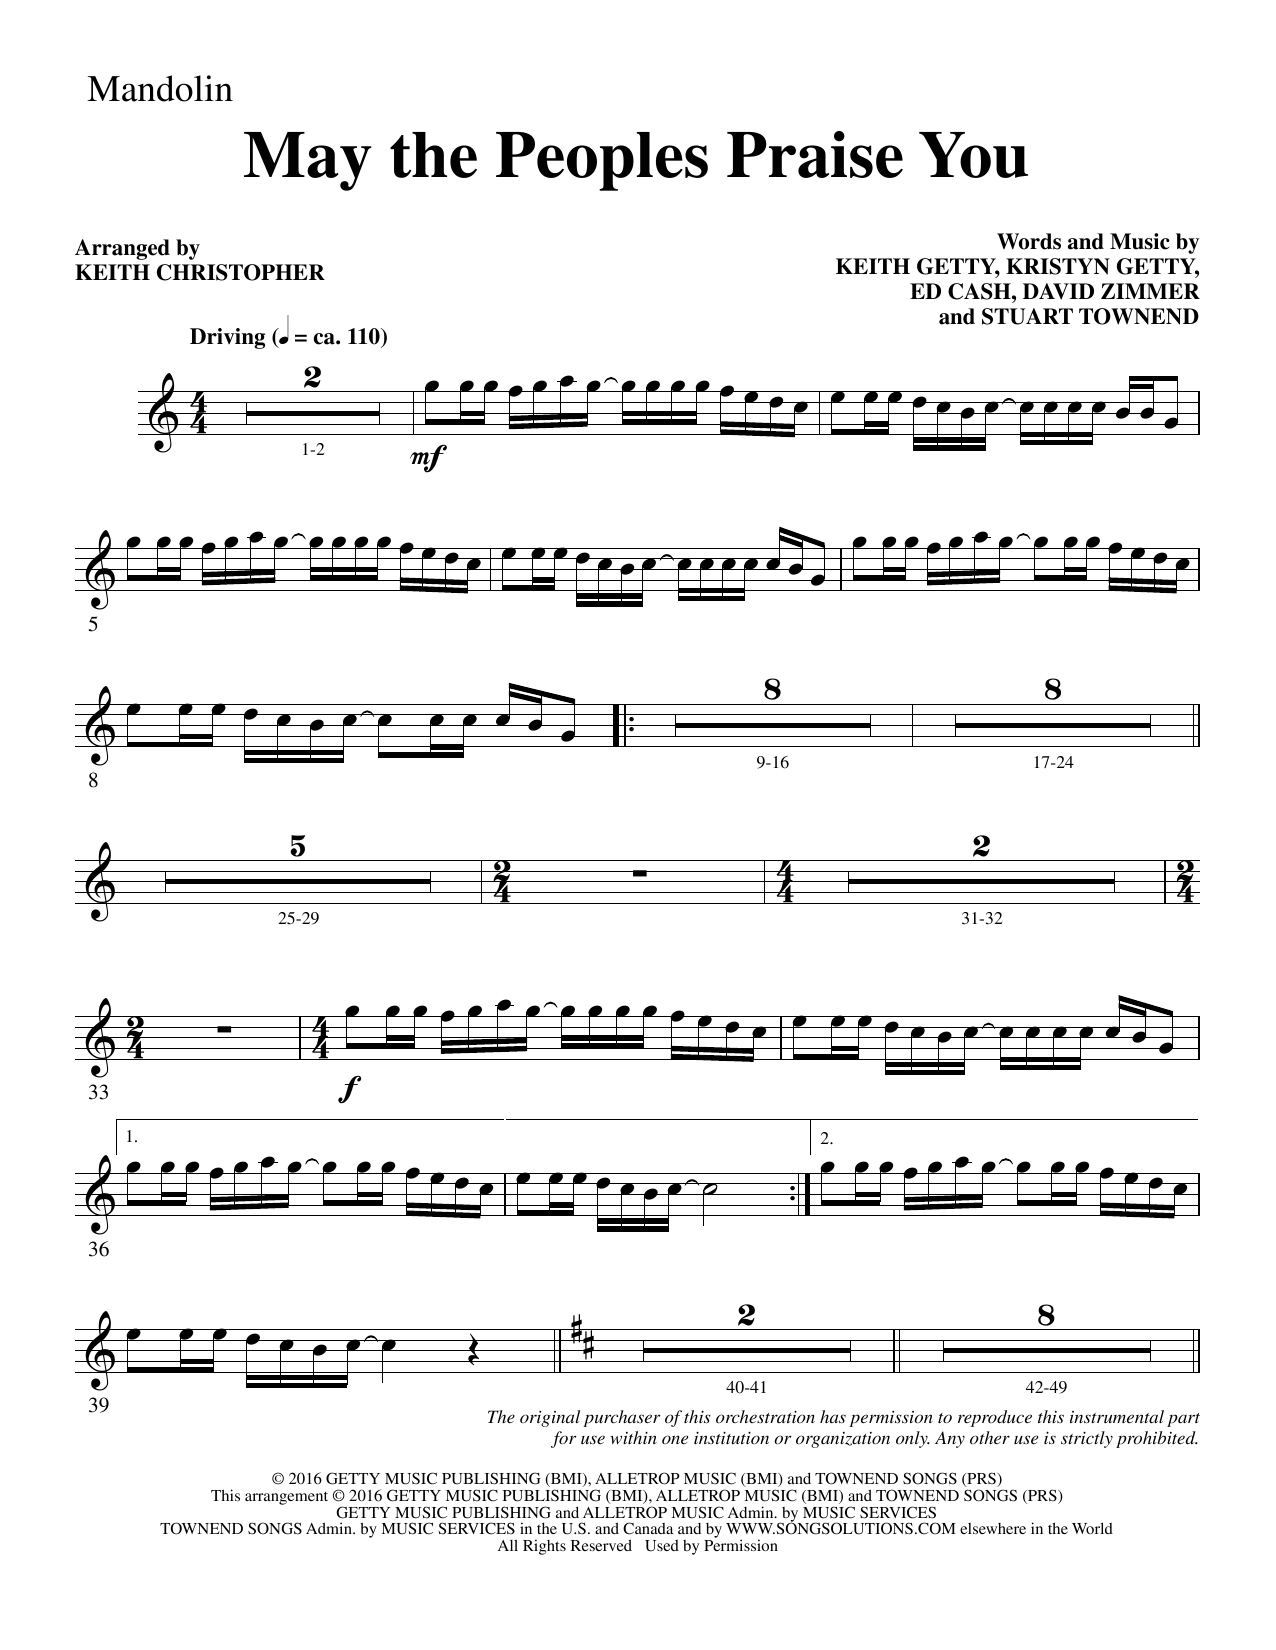 May the Peoples Praise You - Mandolin Sheet Music